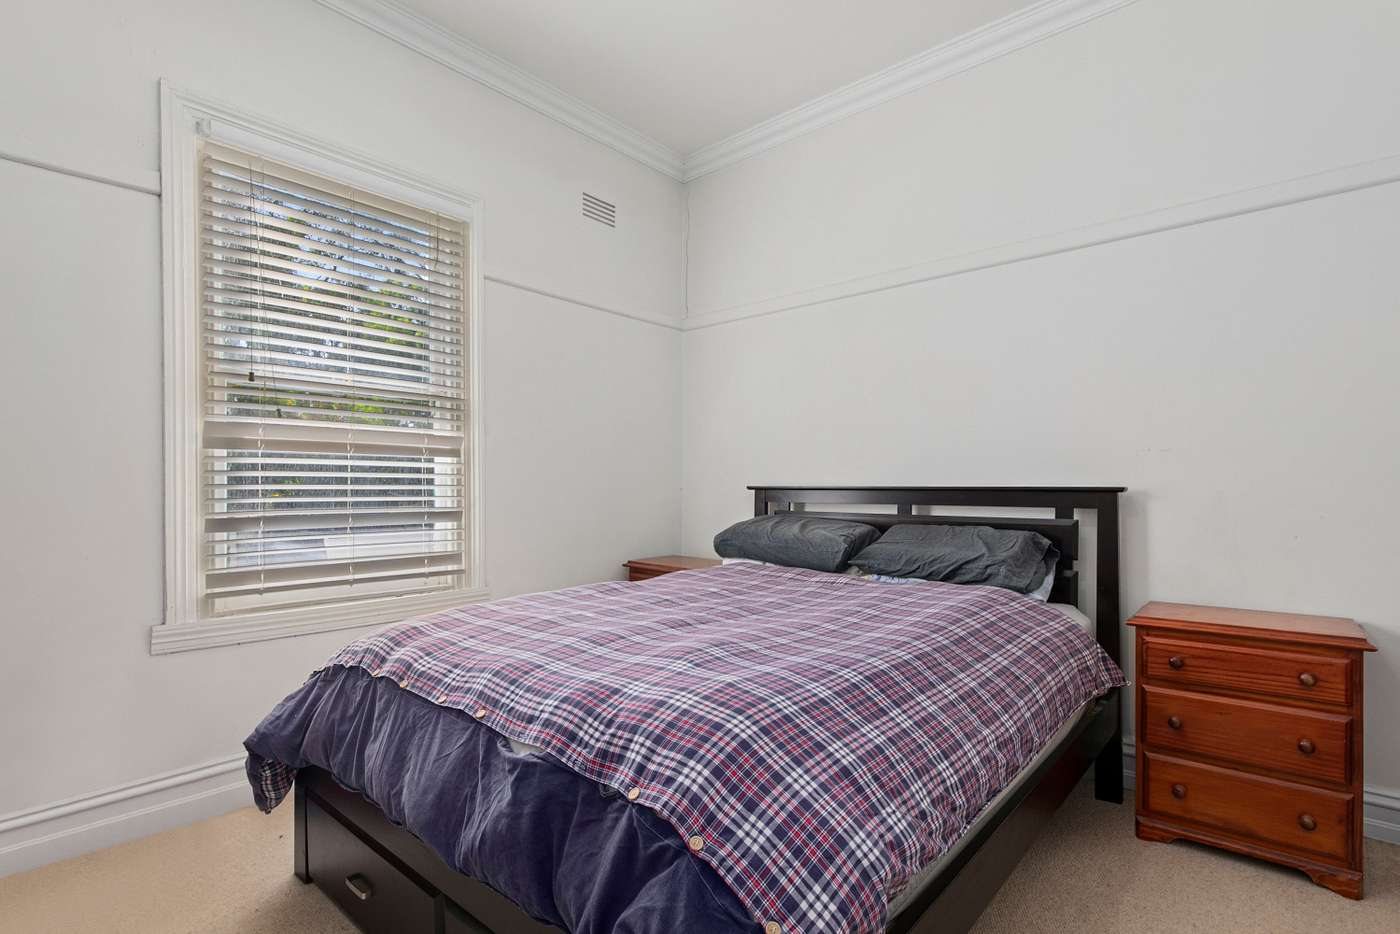 Sixth view of Homely house listing, 33 Dry Creek Crescent, Wandong VIC 3758